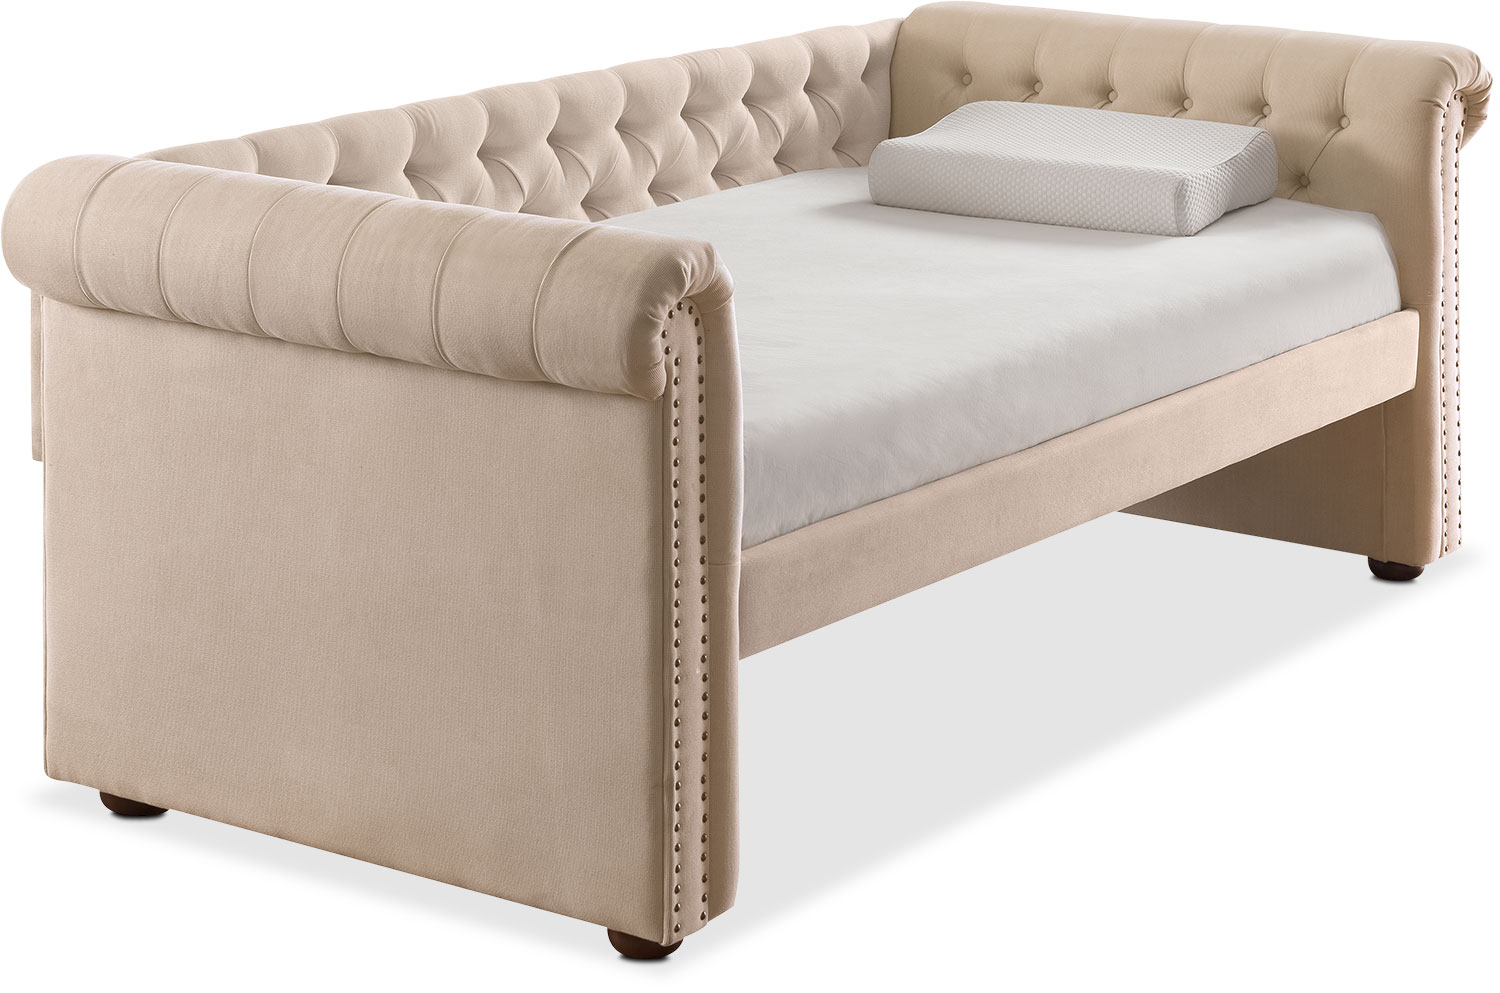 Kids Furniture   Shelton Twin Upholstered Daybed   Ivory